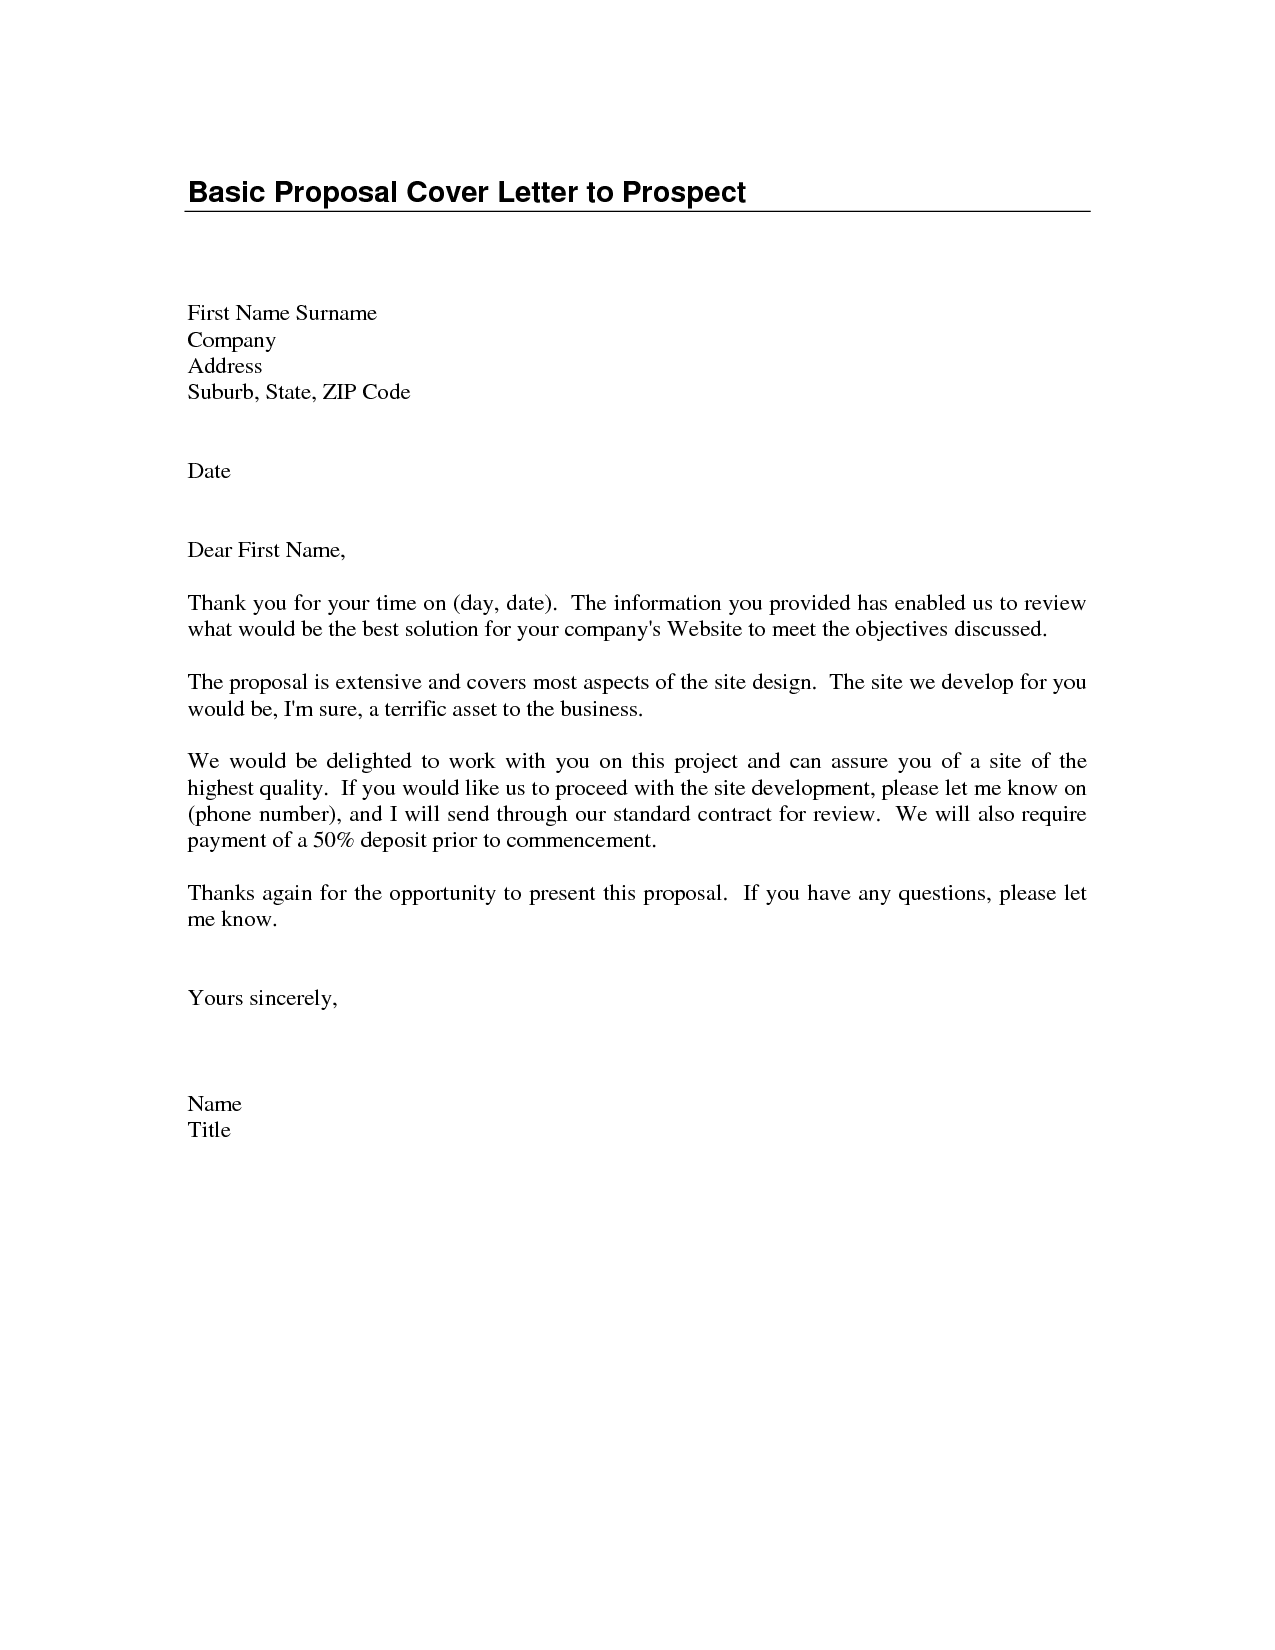 Basic Cover Letter Sample Letters Free Basicsimple